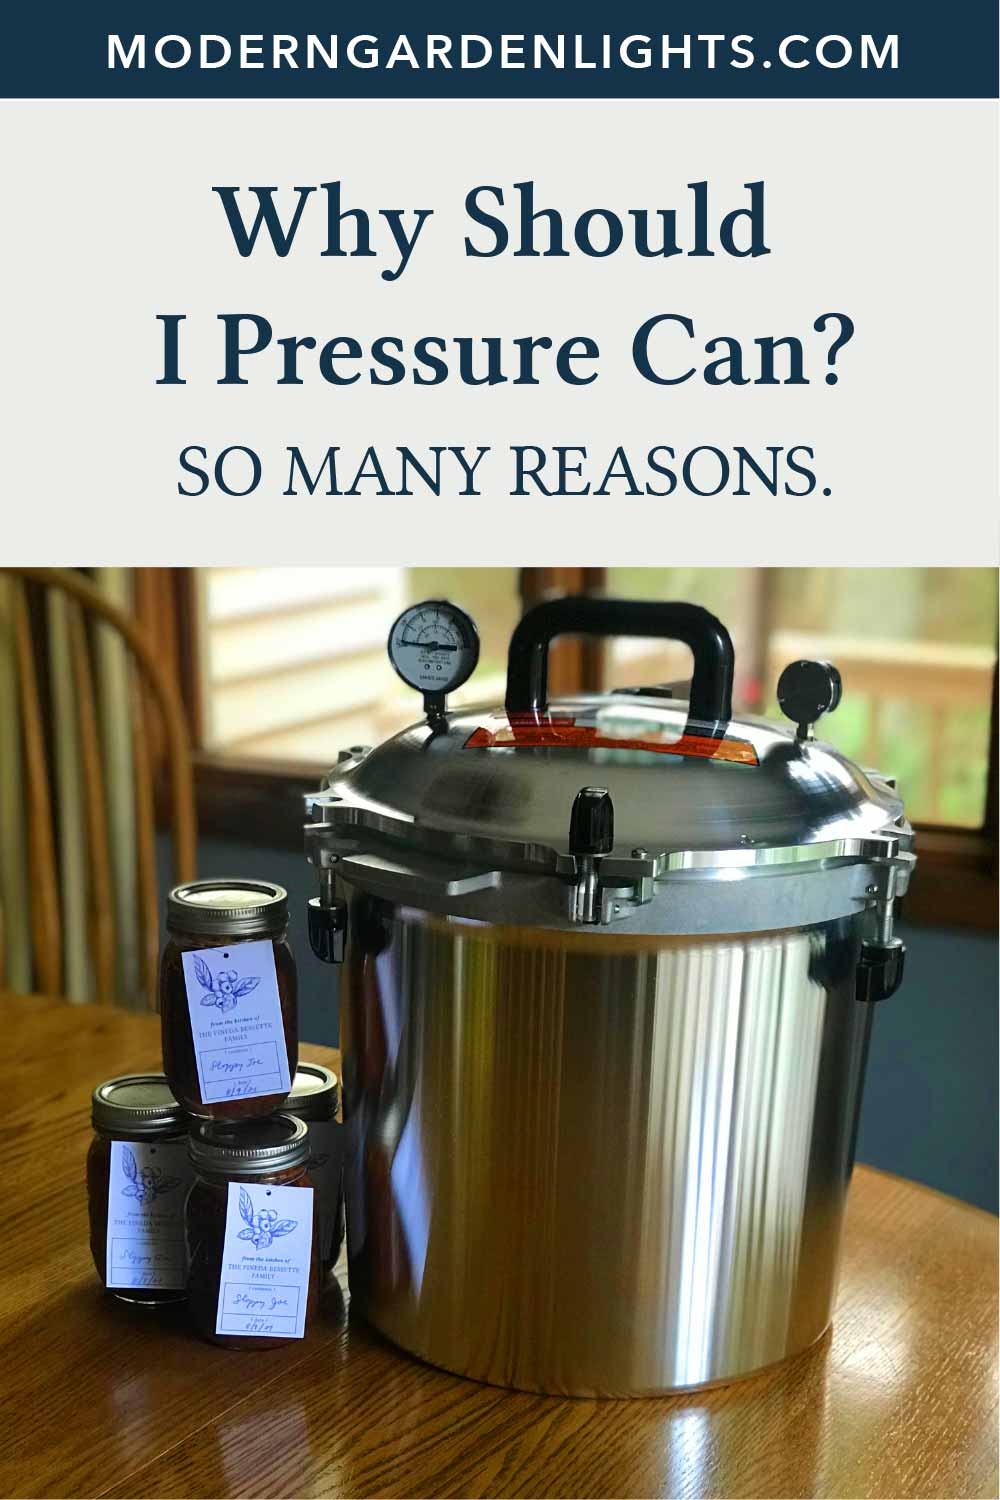 Why Should I Pressure Can?  Answer: So many reasons.